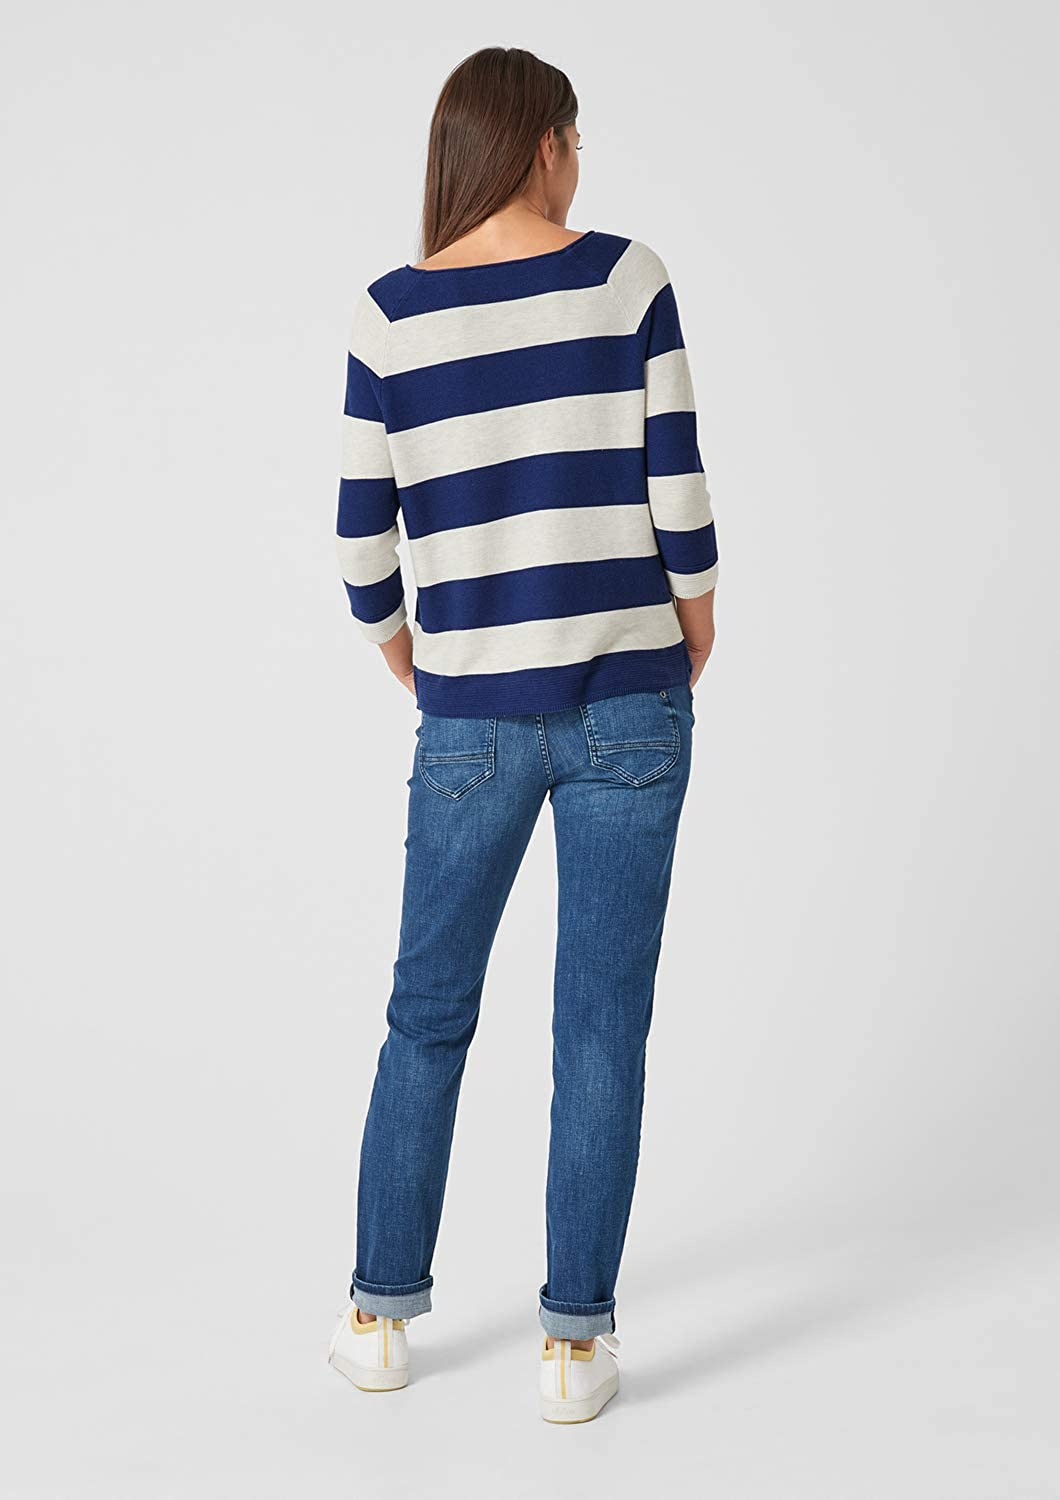 s.Oliver Damen Pullover Blau (Royal Blue Stripes 56g4)